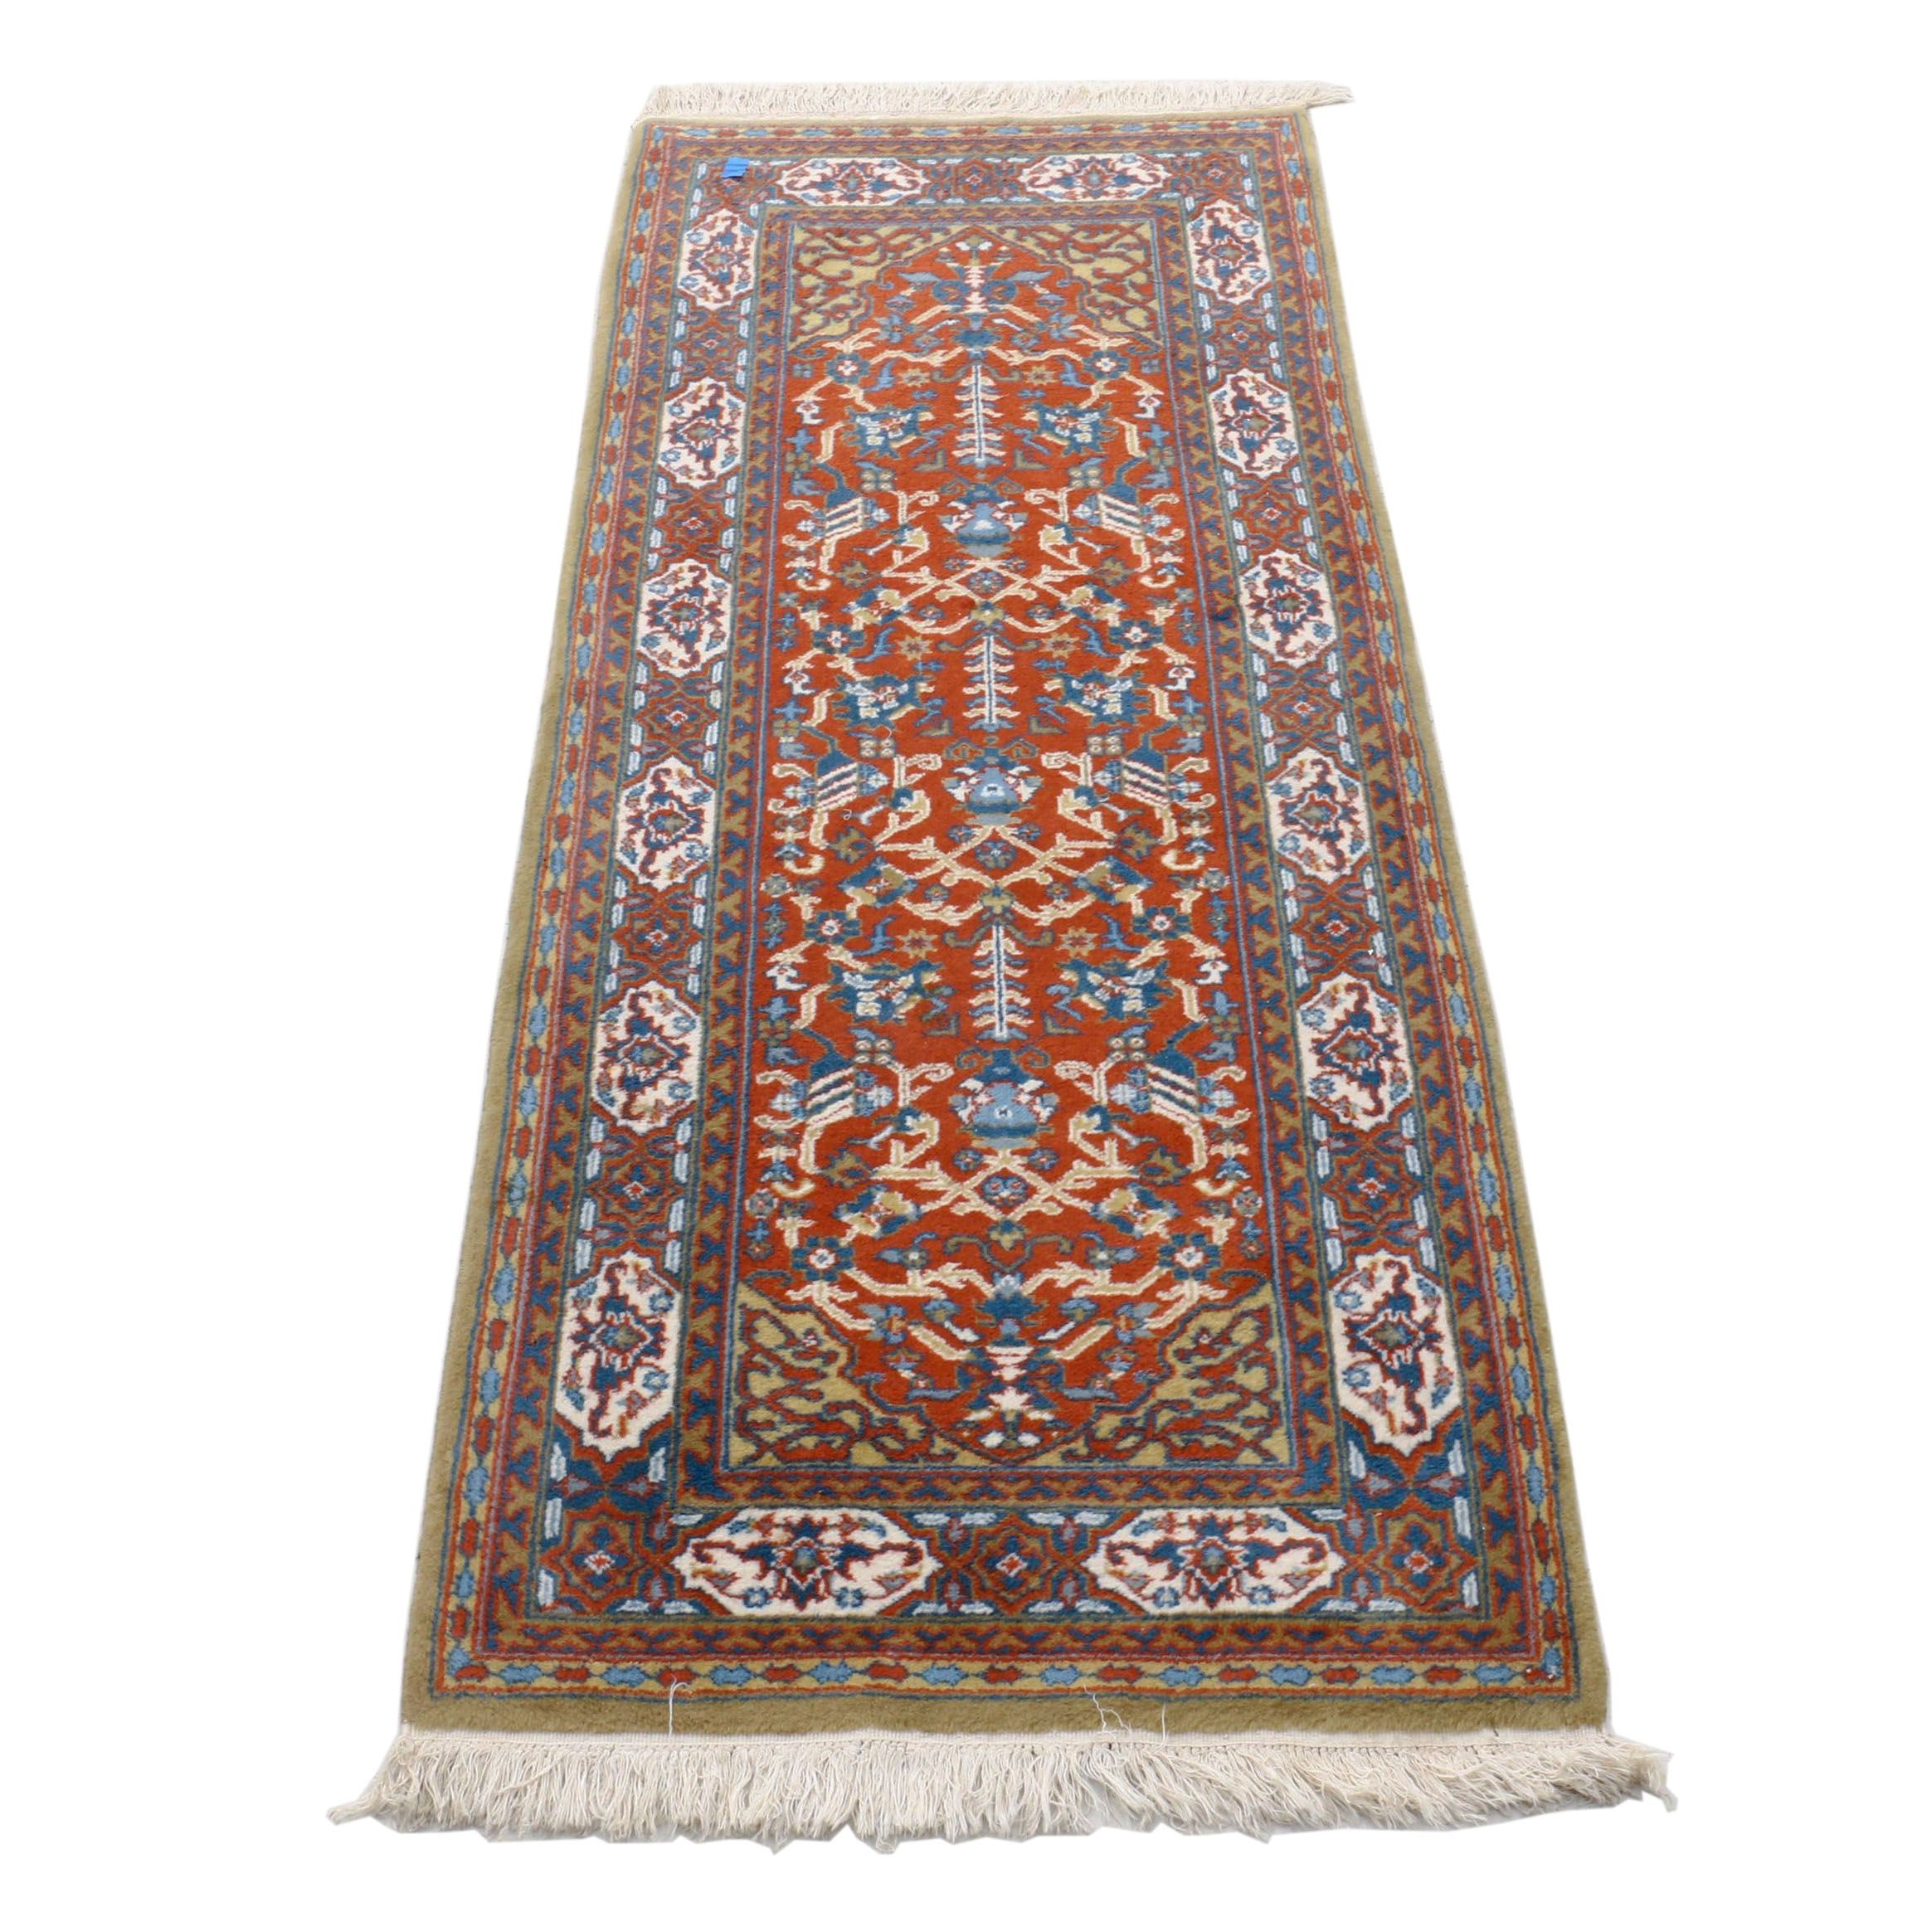 Hand-Knotted Indian Agrippa Wool Floral Rug